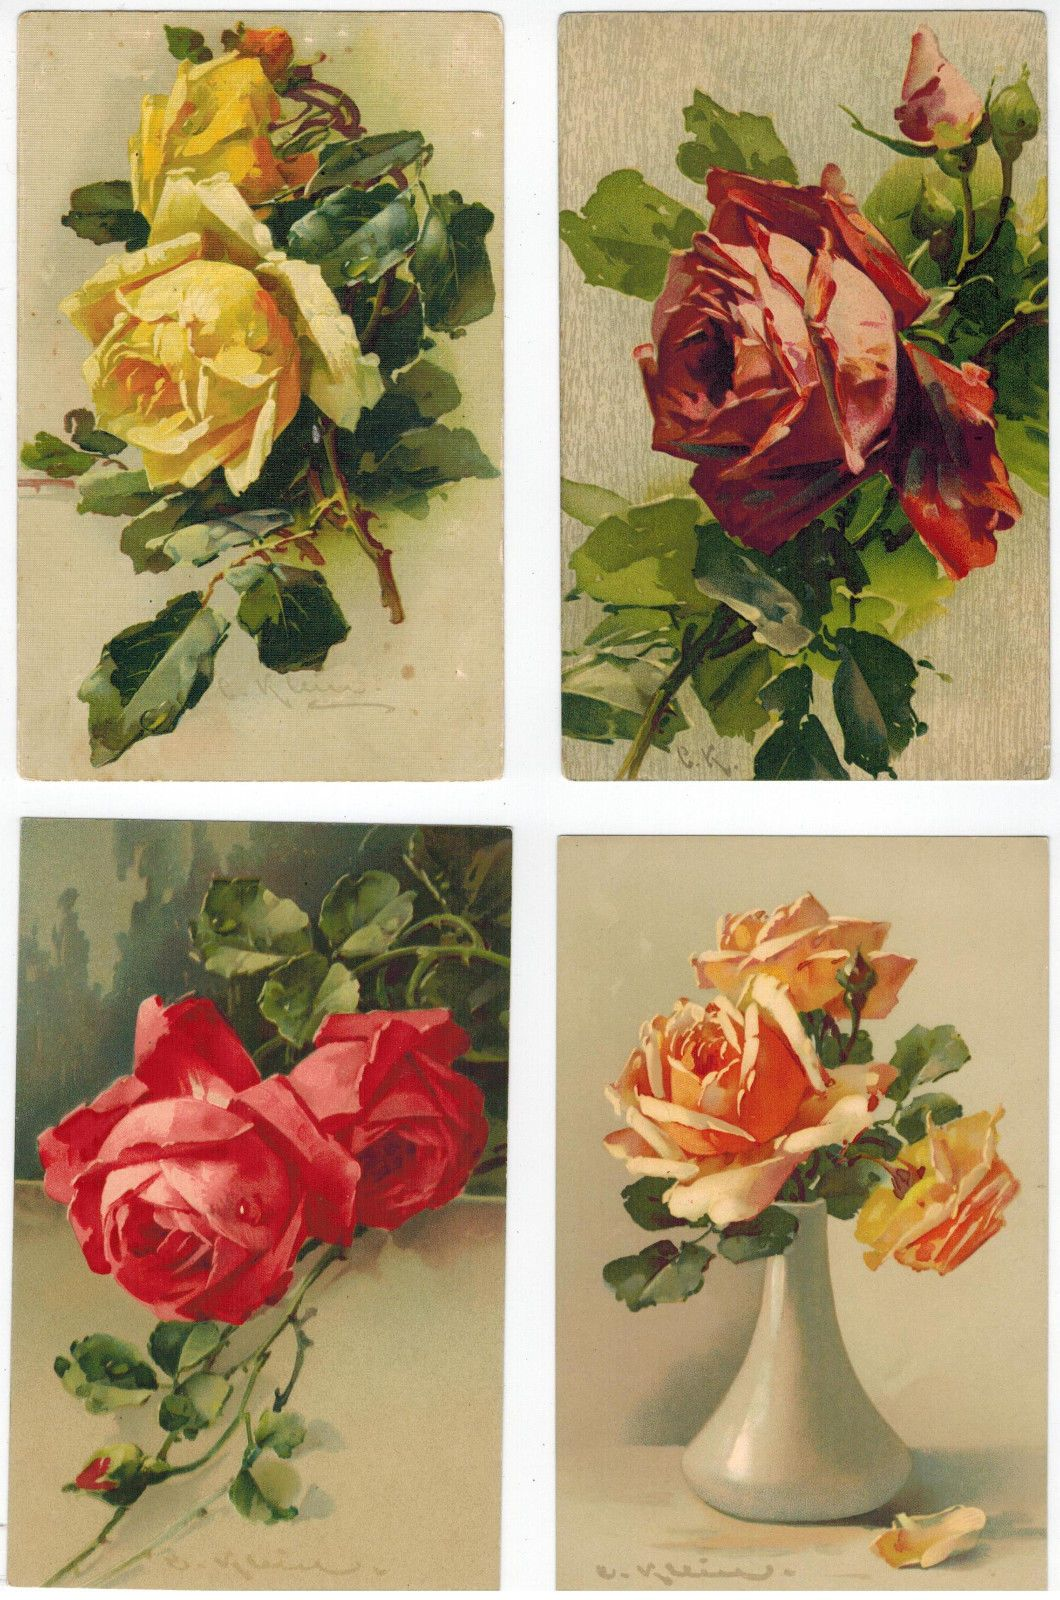 art cards of catherine klein roses europe from s